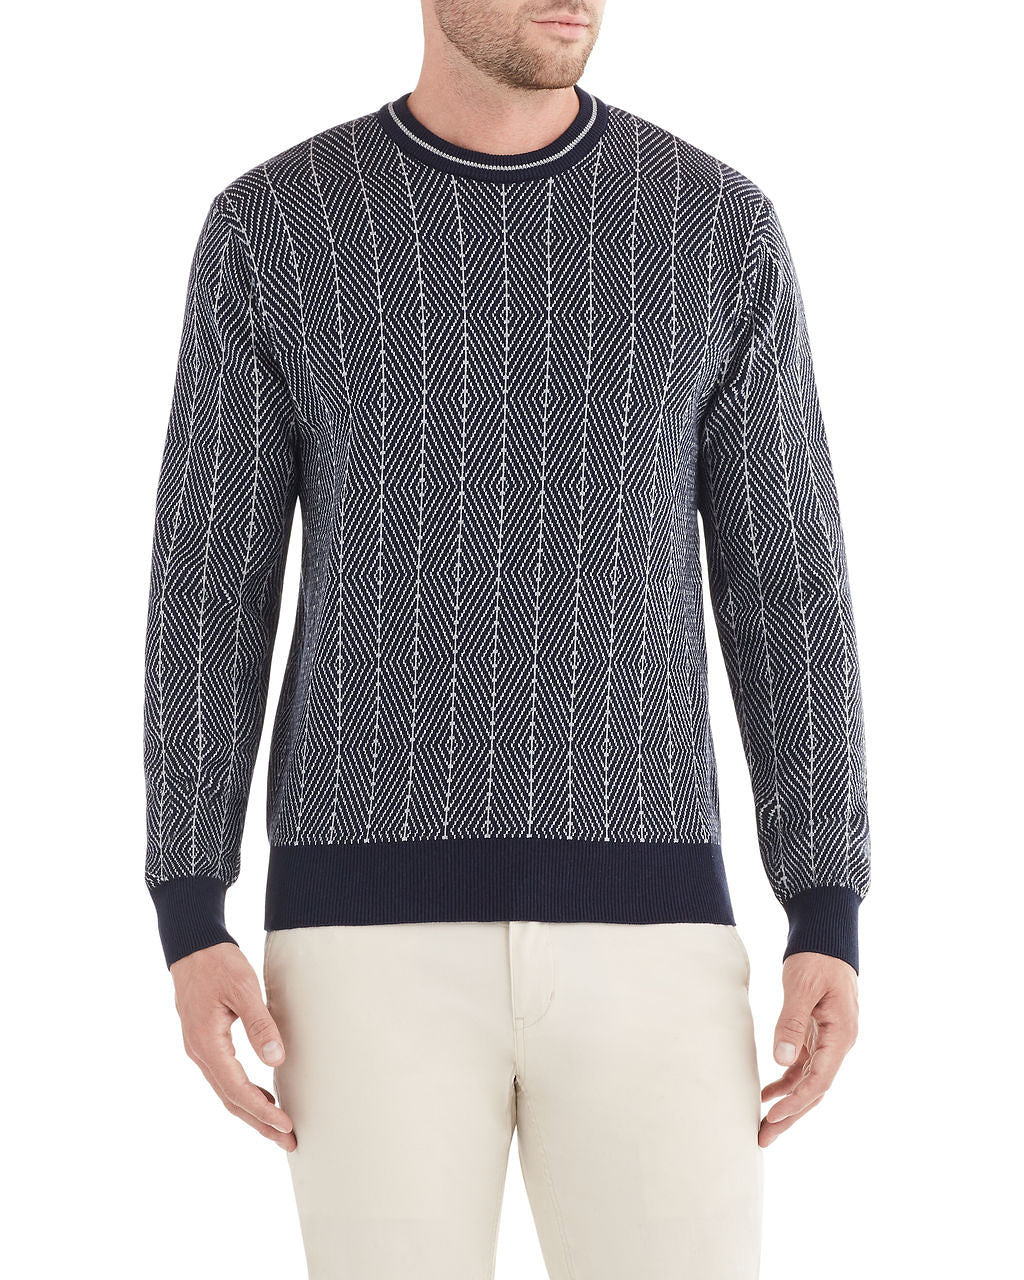 Diamond Jacquard Crewneck Sweater - Dark Navy